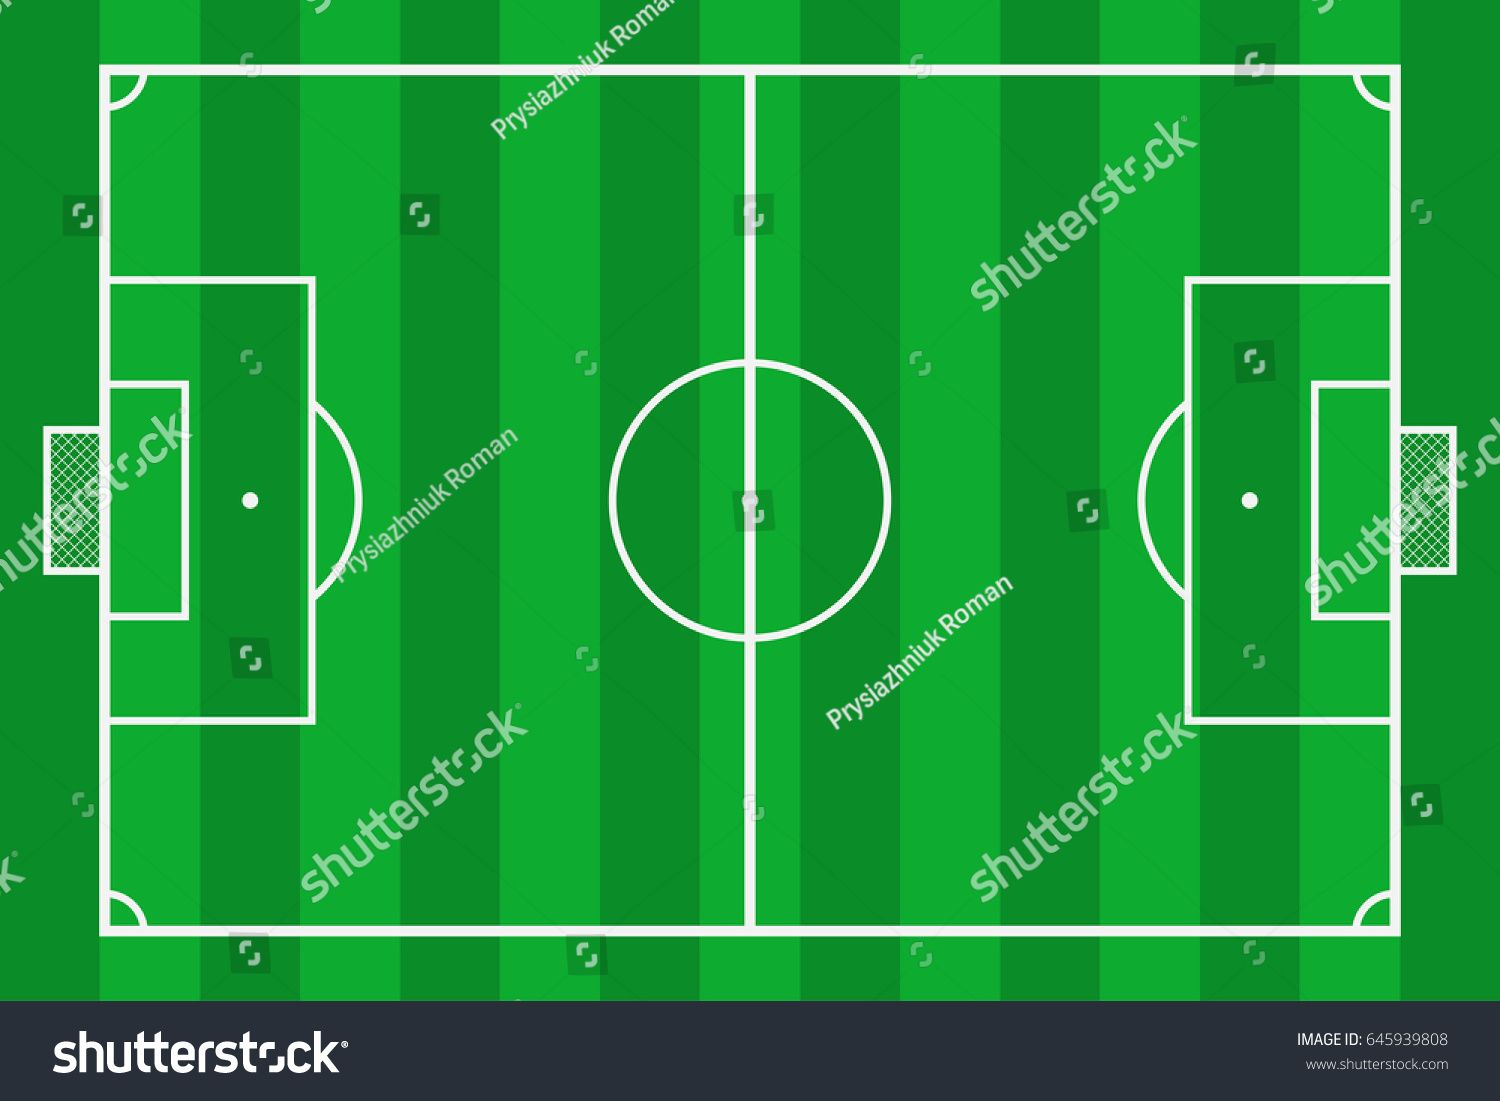 Soccer Field Green Grass Football Court Mockup Background Field For Sport Strategy And Poster Vector Il Soccer Field Green Grass Responsive Website Template